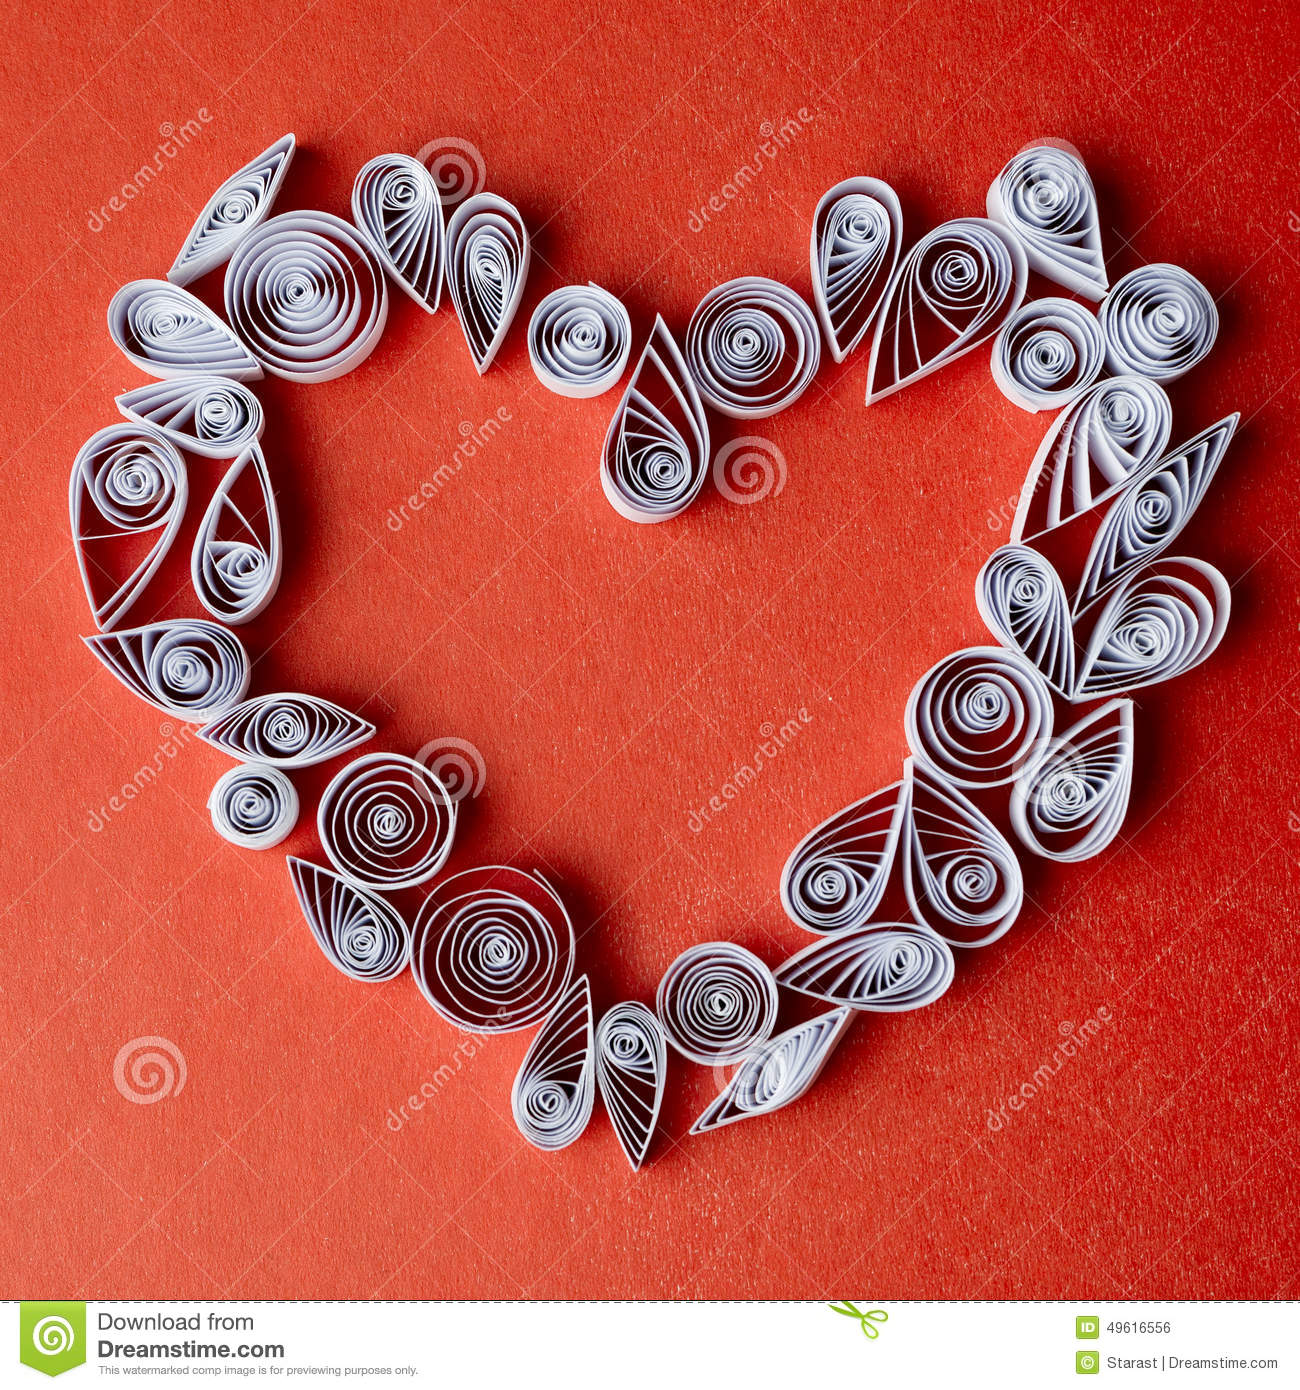 Hearts Of Paper Quilling For Valentine S Day Stock Photo Image Of